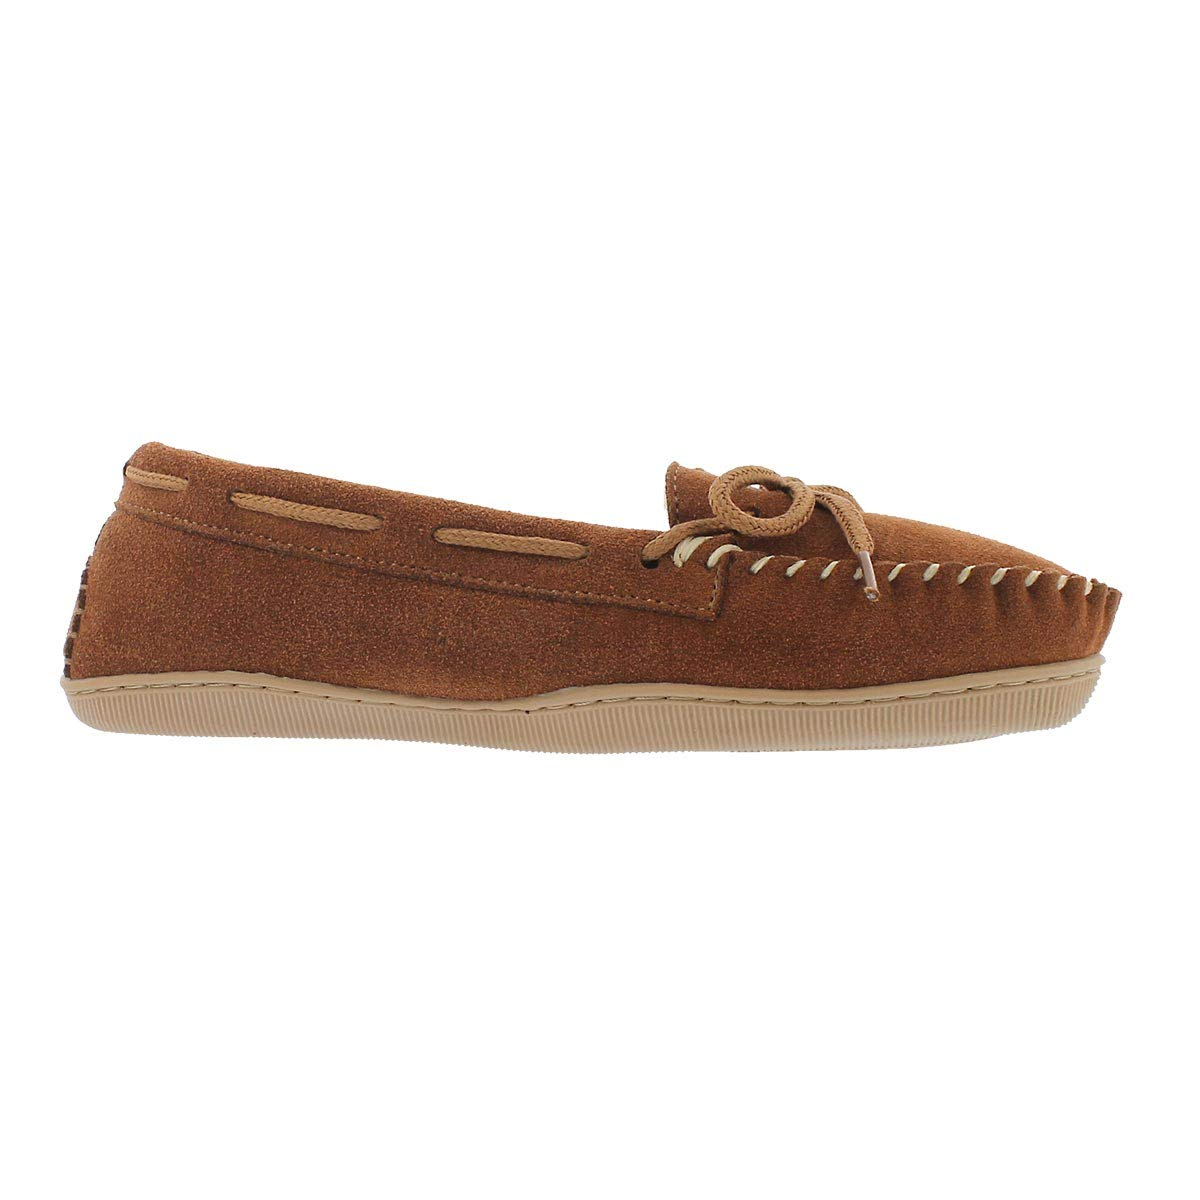 SoftMoc Womens Delphi Lined Ballerina Moccasin Spice 7 M US